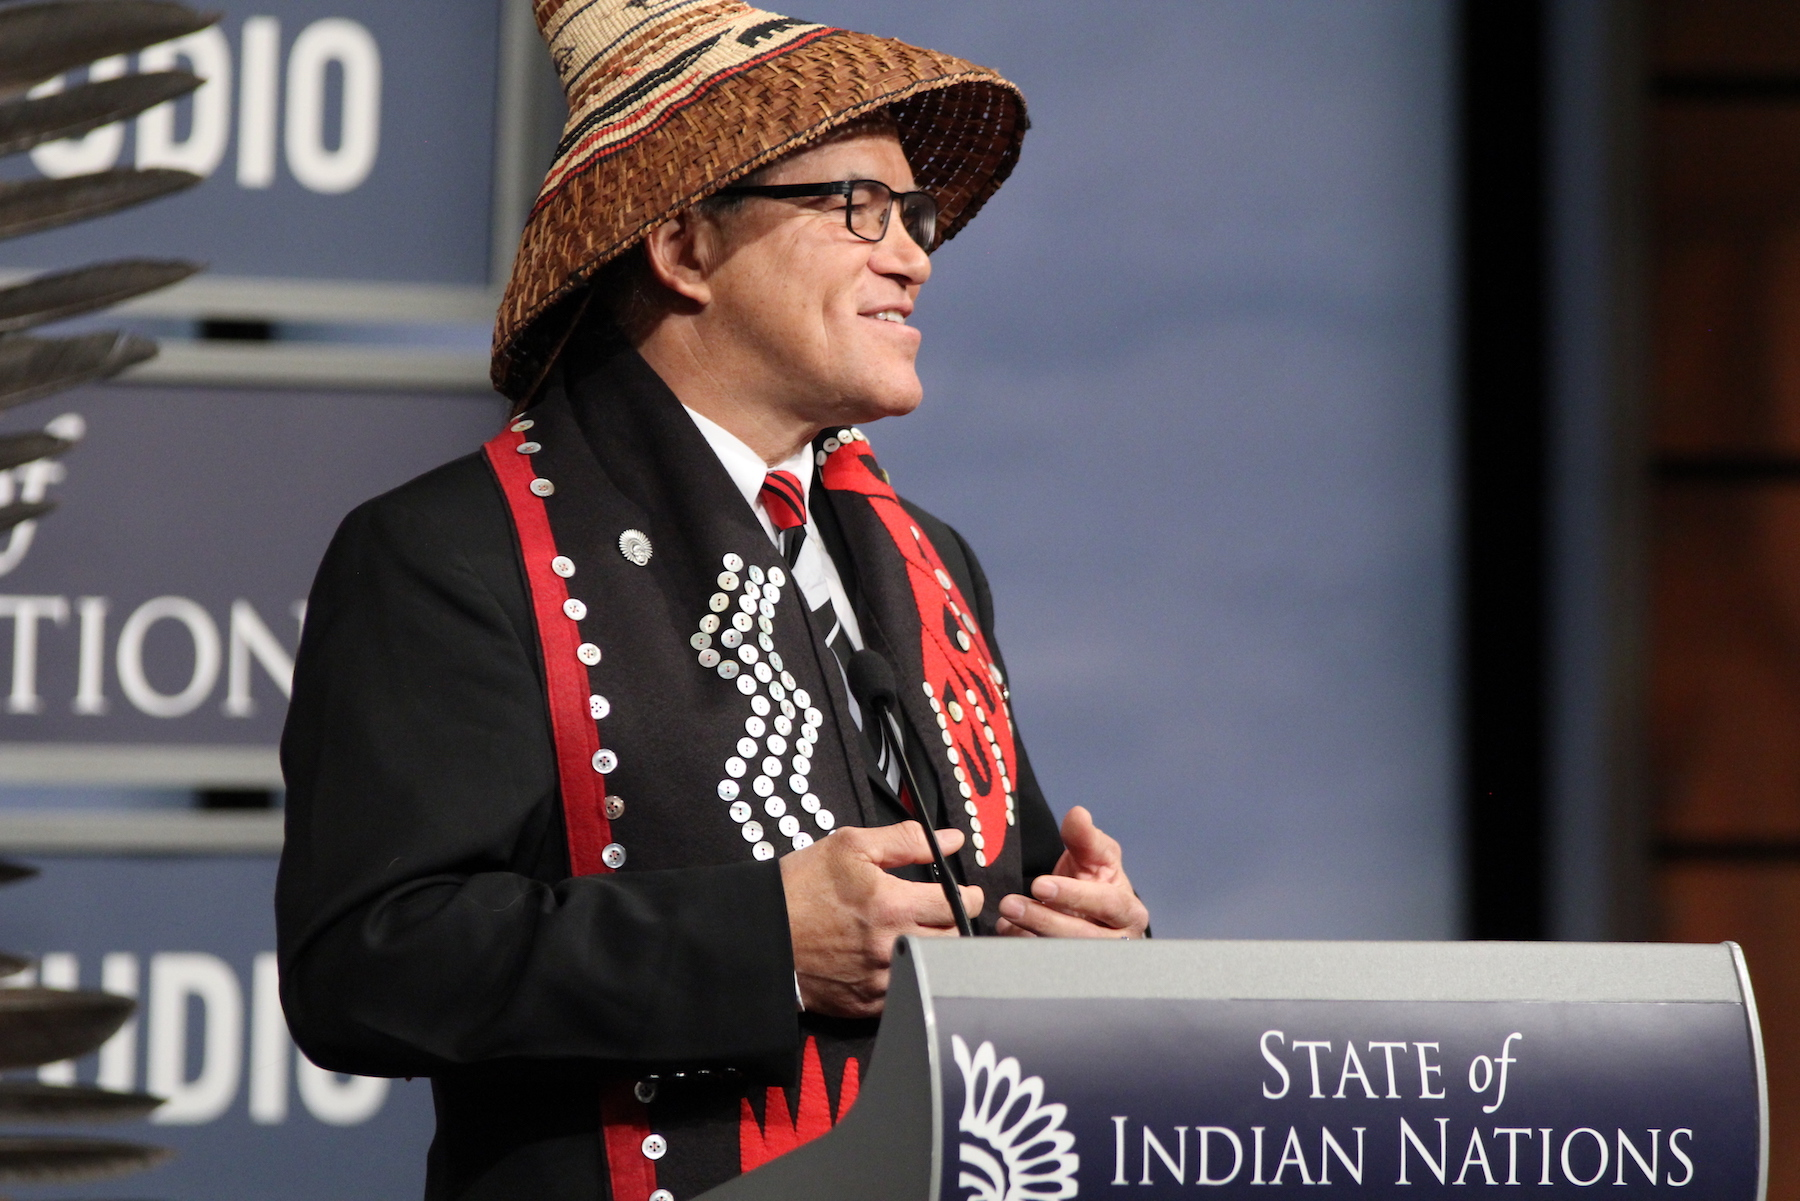 First State of Indian Nations address in the new Donald Trump era